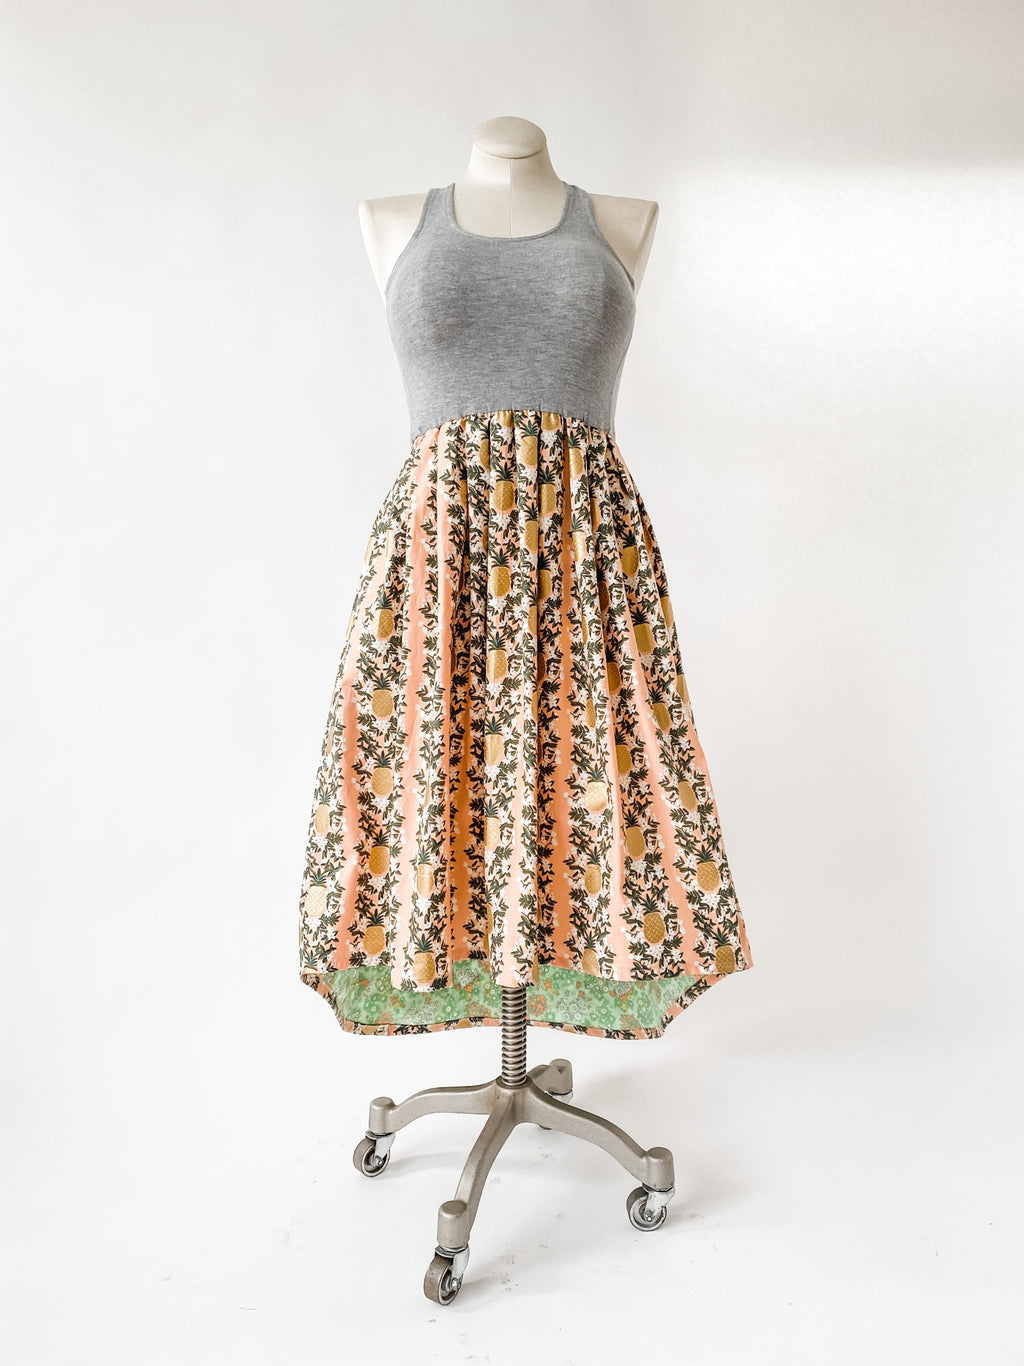 Together Dress in Peachy Pineapple with Train - made with Rifle Paper Co Fabric